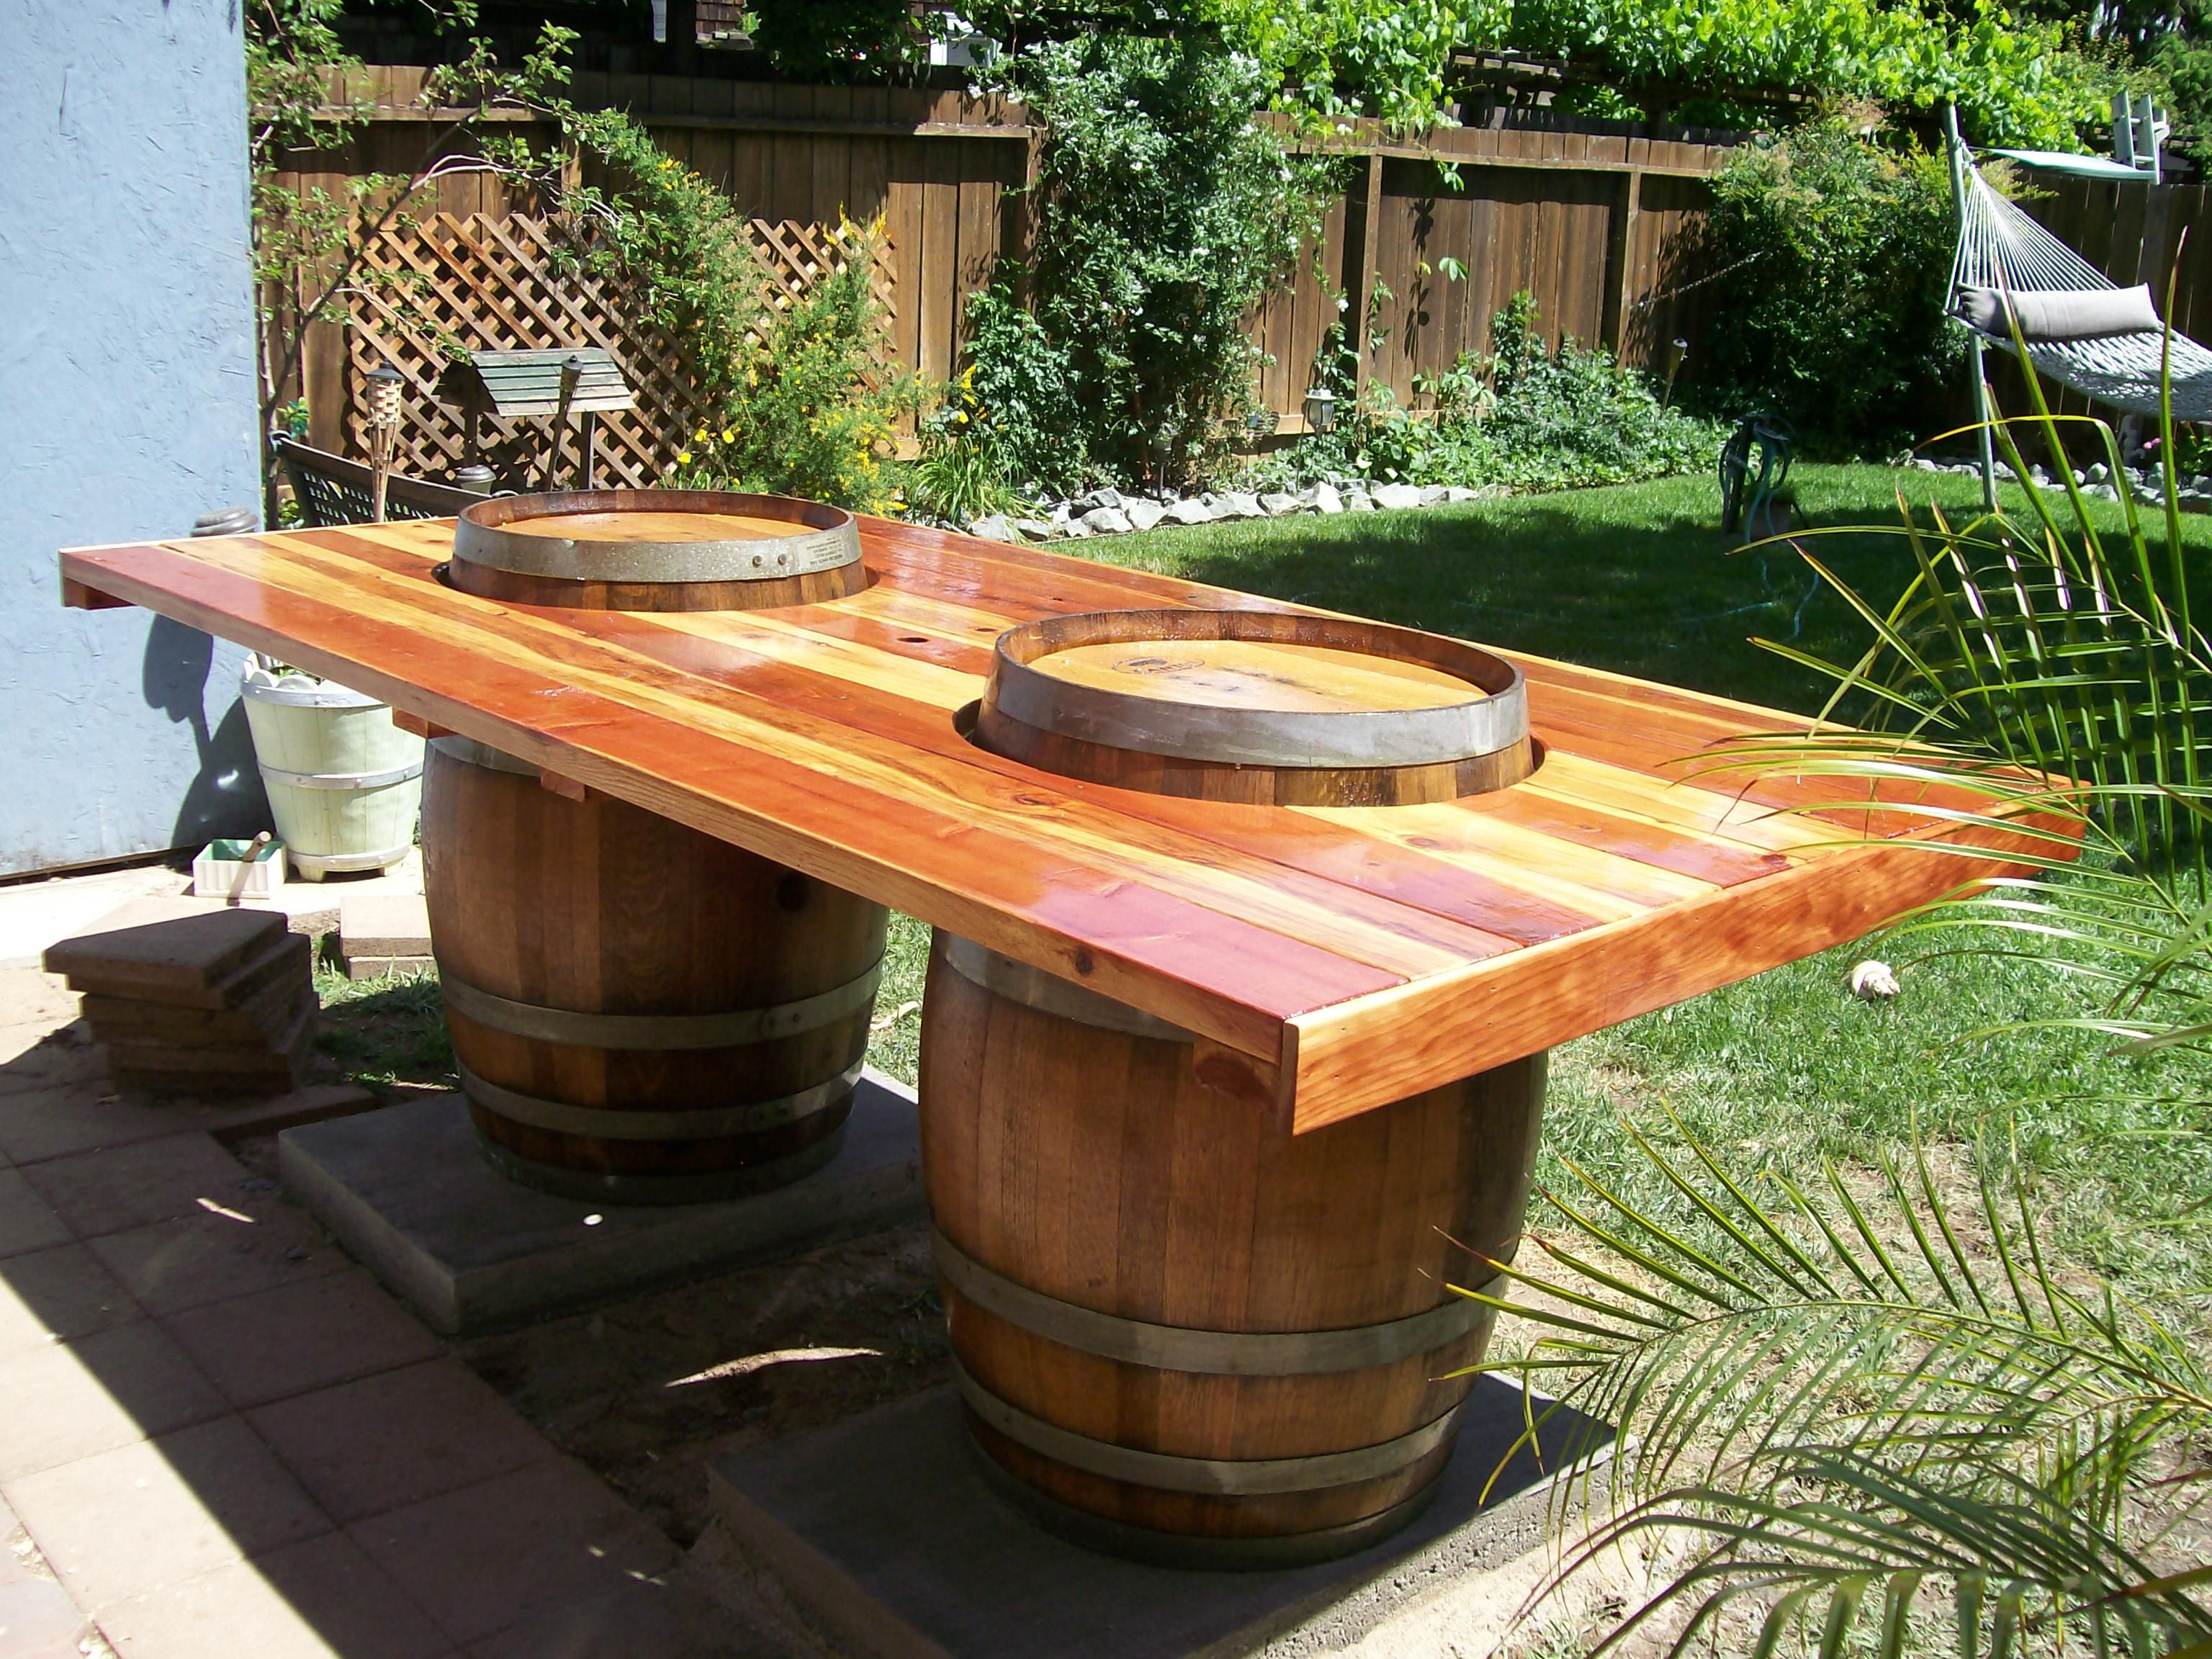 Diy wine barrel table - Wine Barrel Table This Would B Perfect For A Crawfish Boil